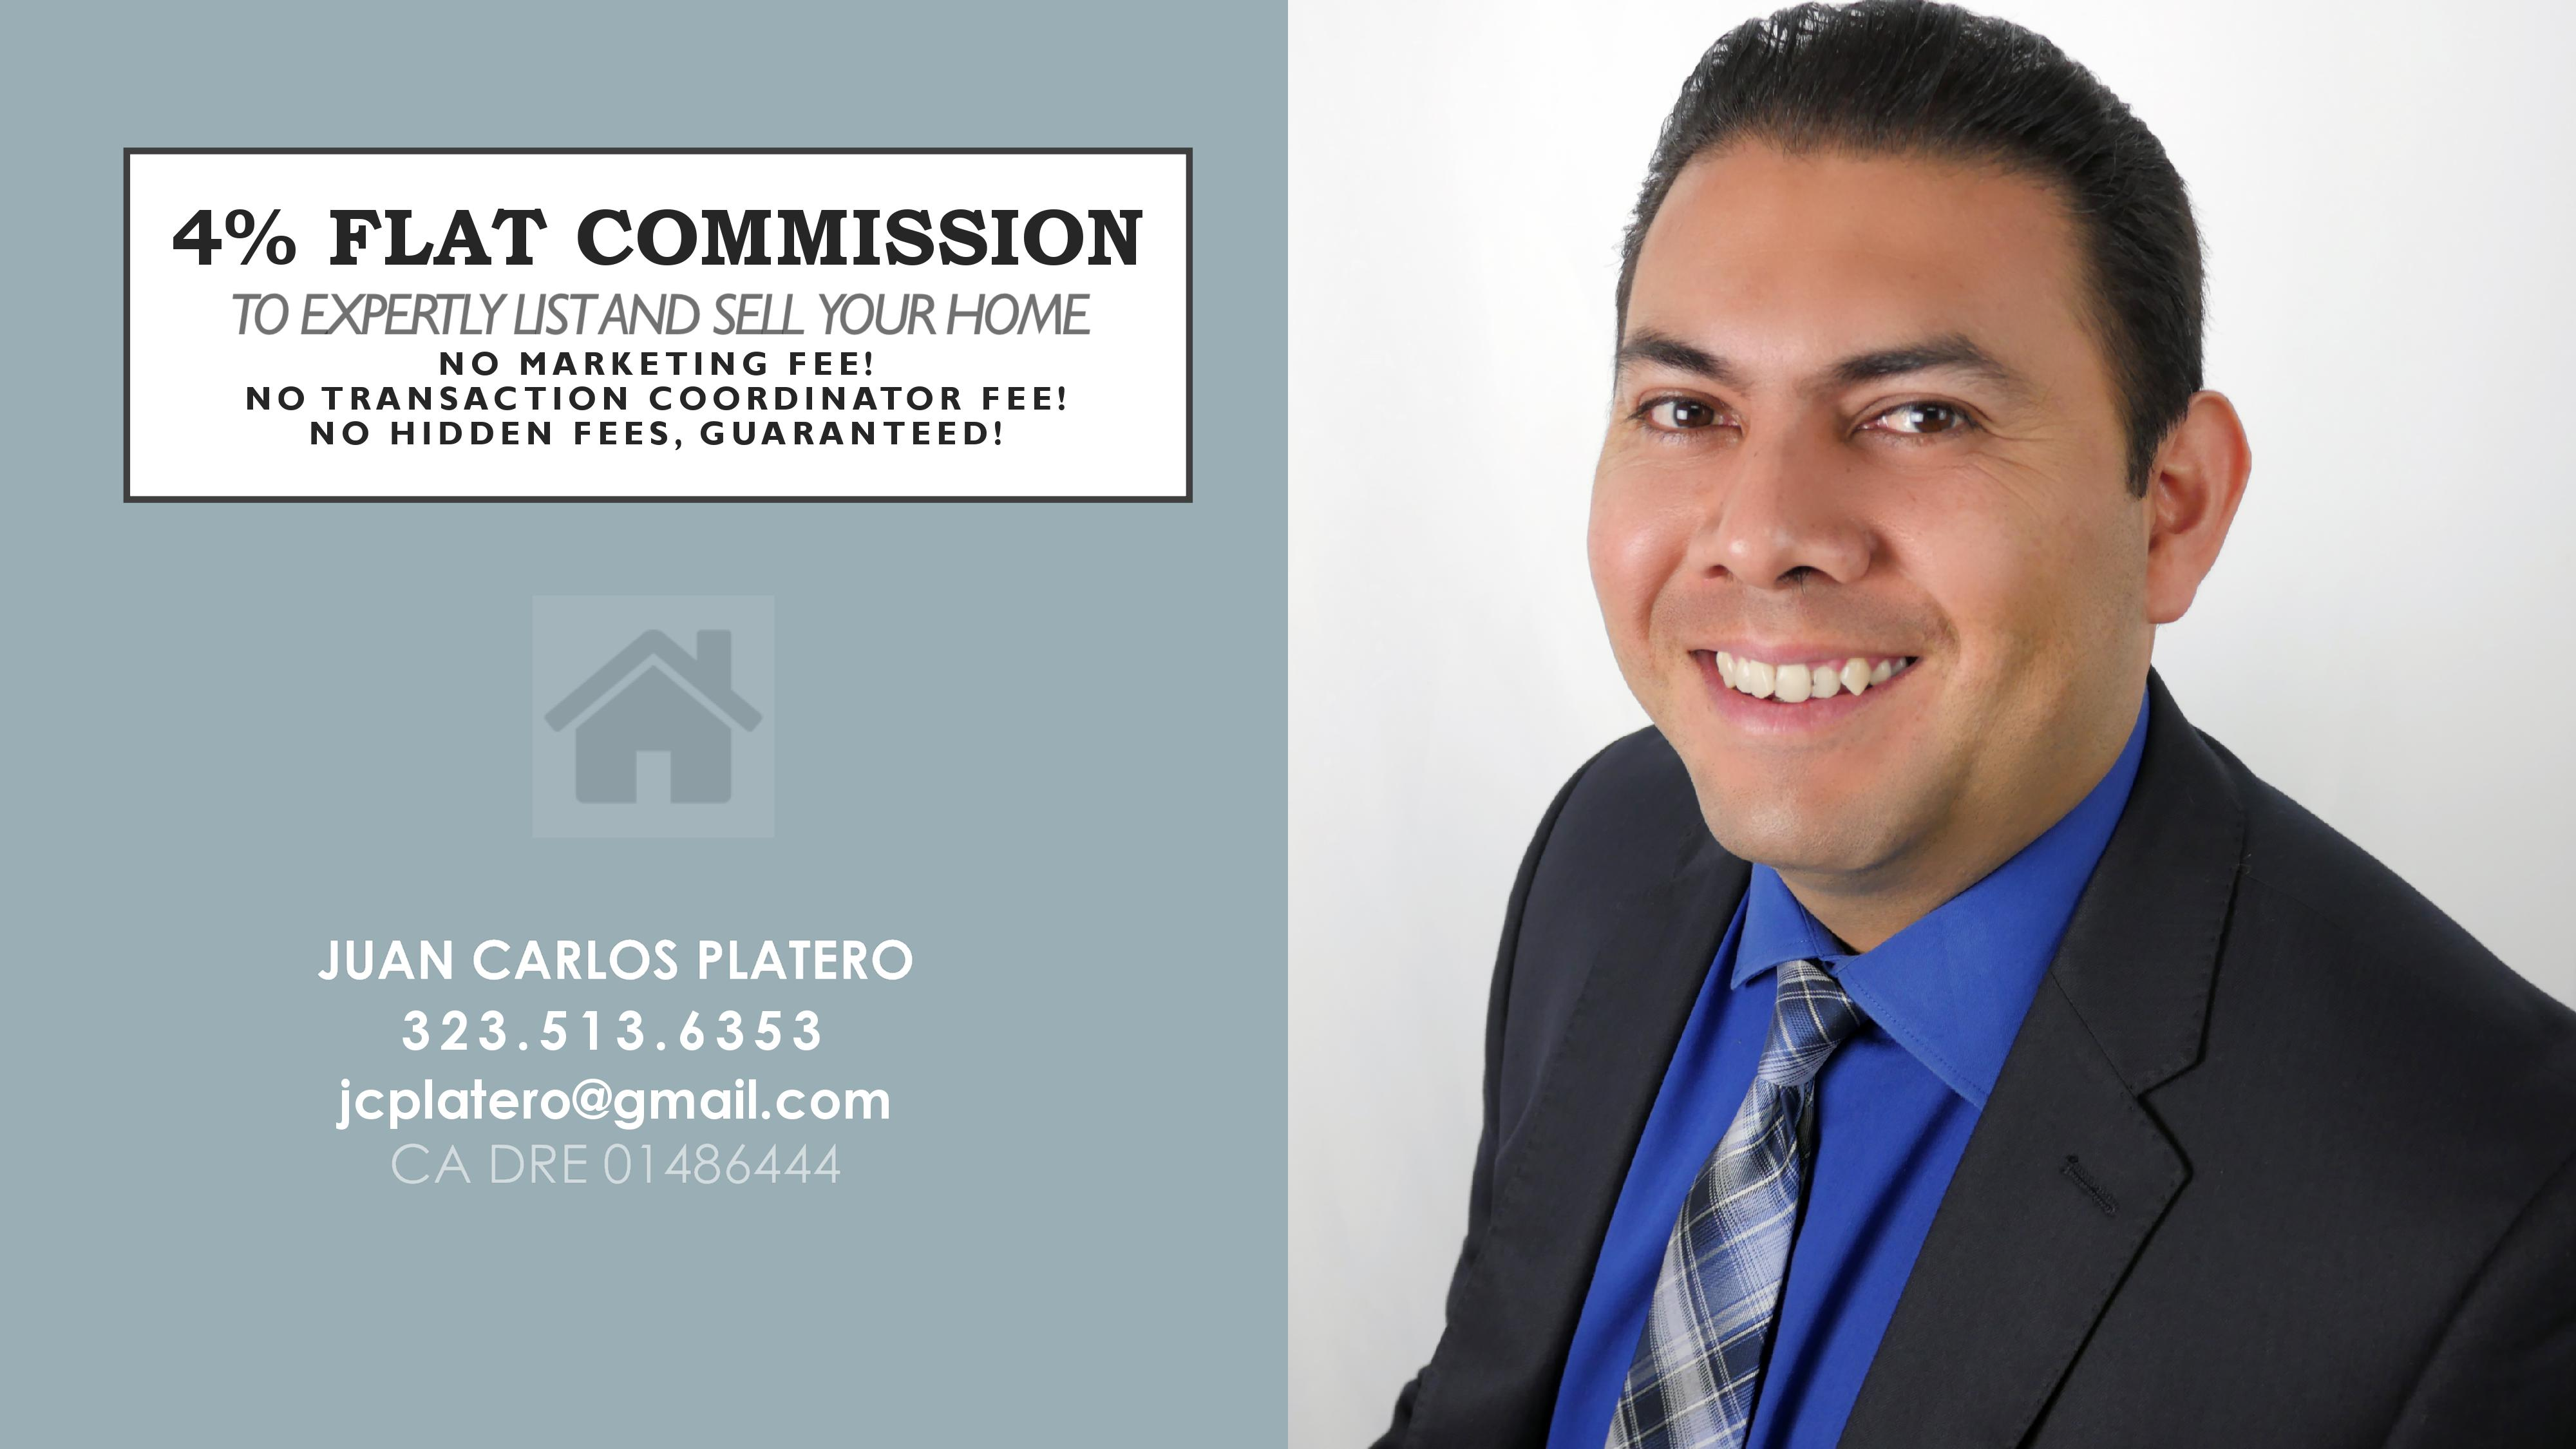 LIST YOUR HOME 4% FLAT COMMISSION